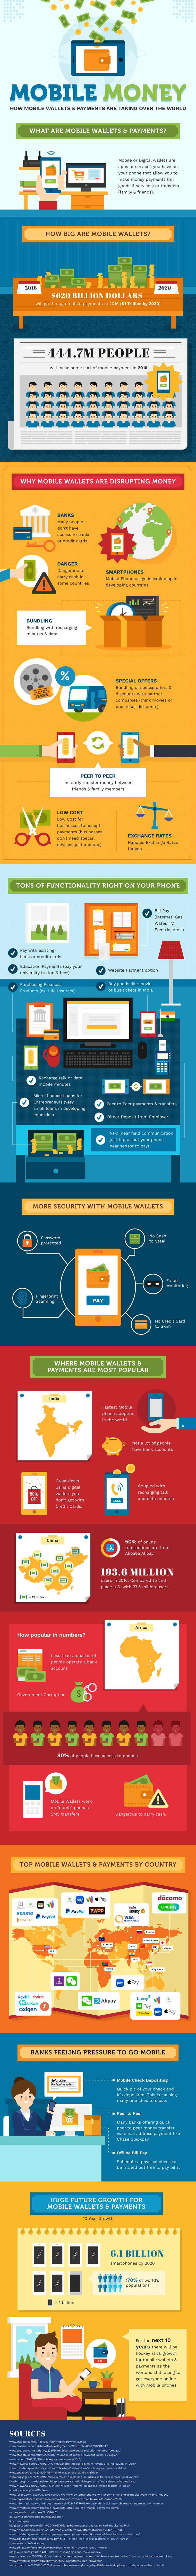 Mobile Wallet & Payments Infographic